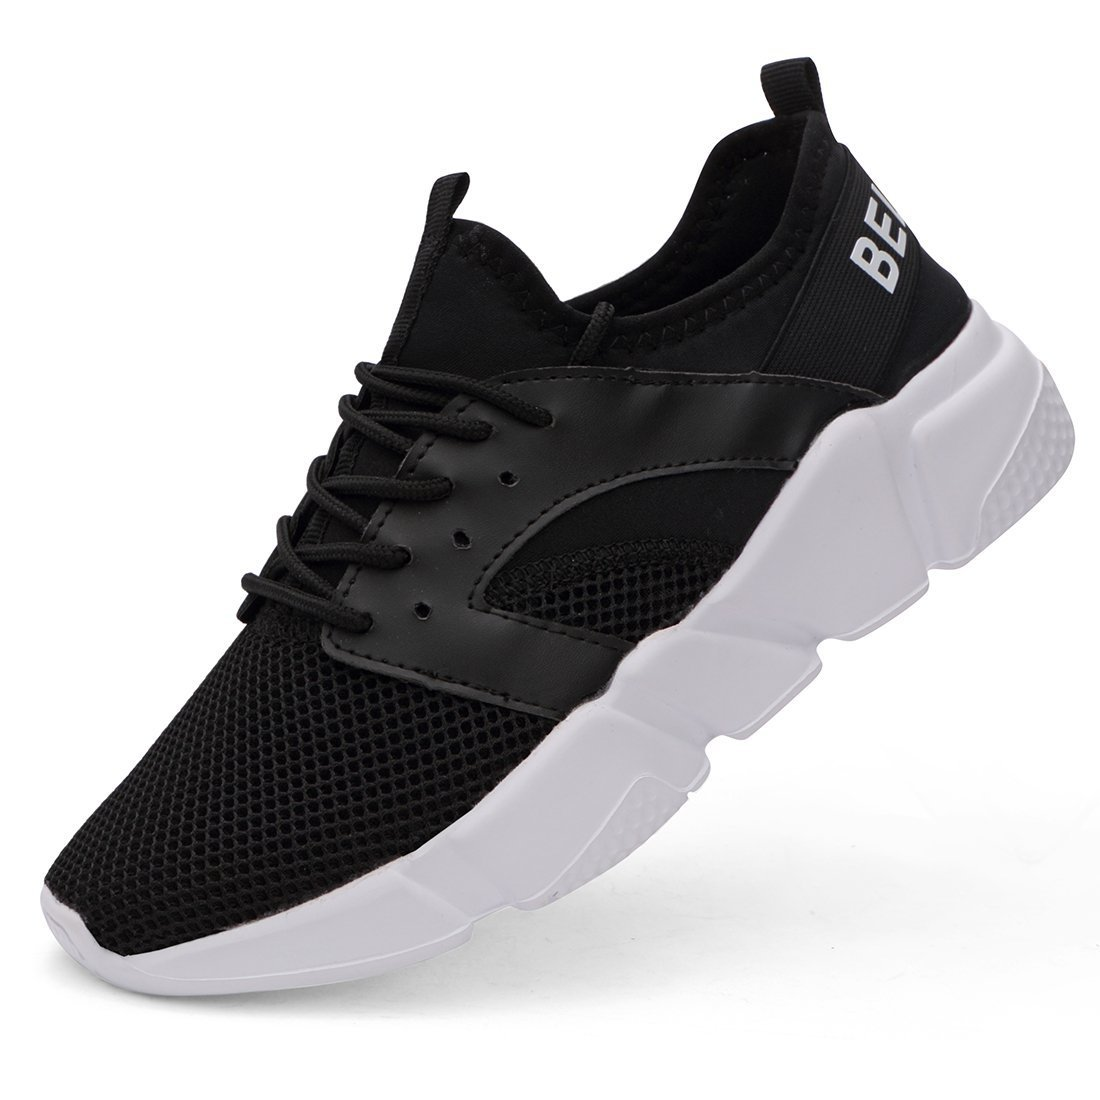 Women's Lightweight Walking Shoes Breathable Mesh Soft Sole for Casual Walk Outdoor Workout Travel Work